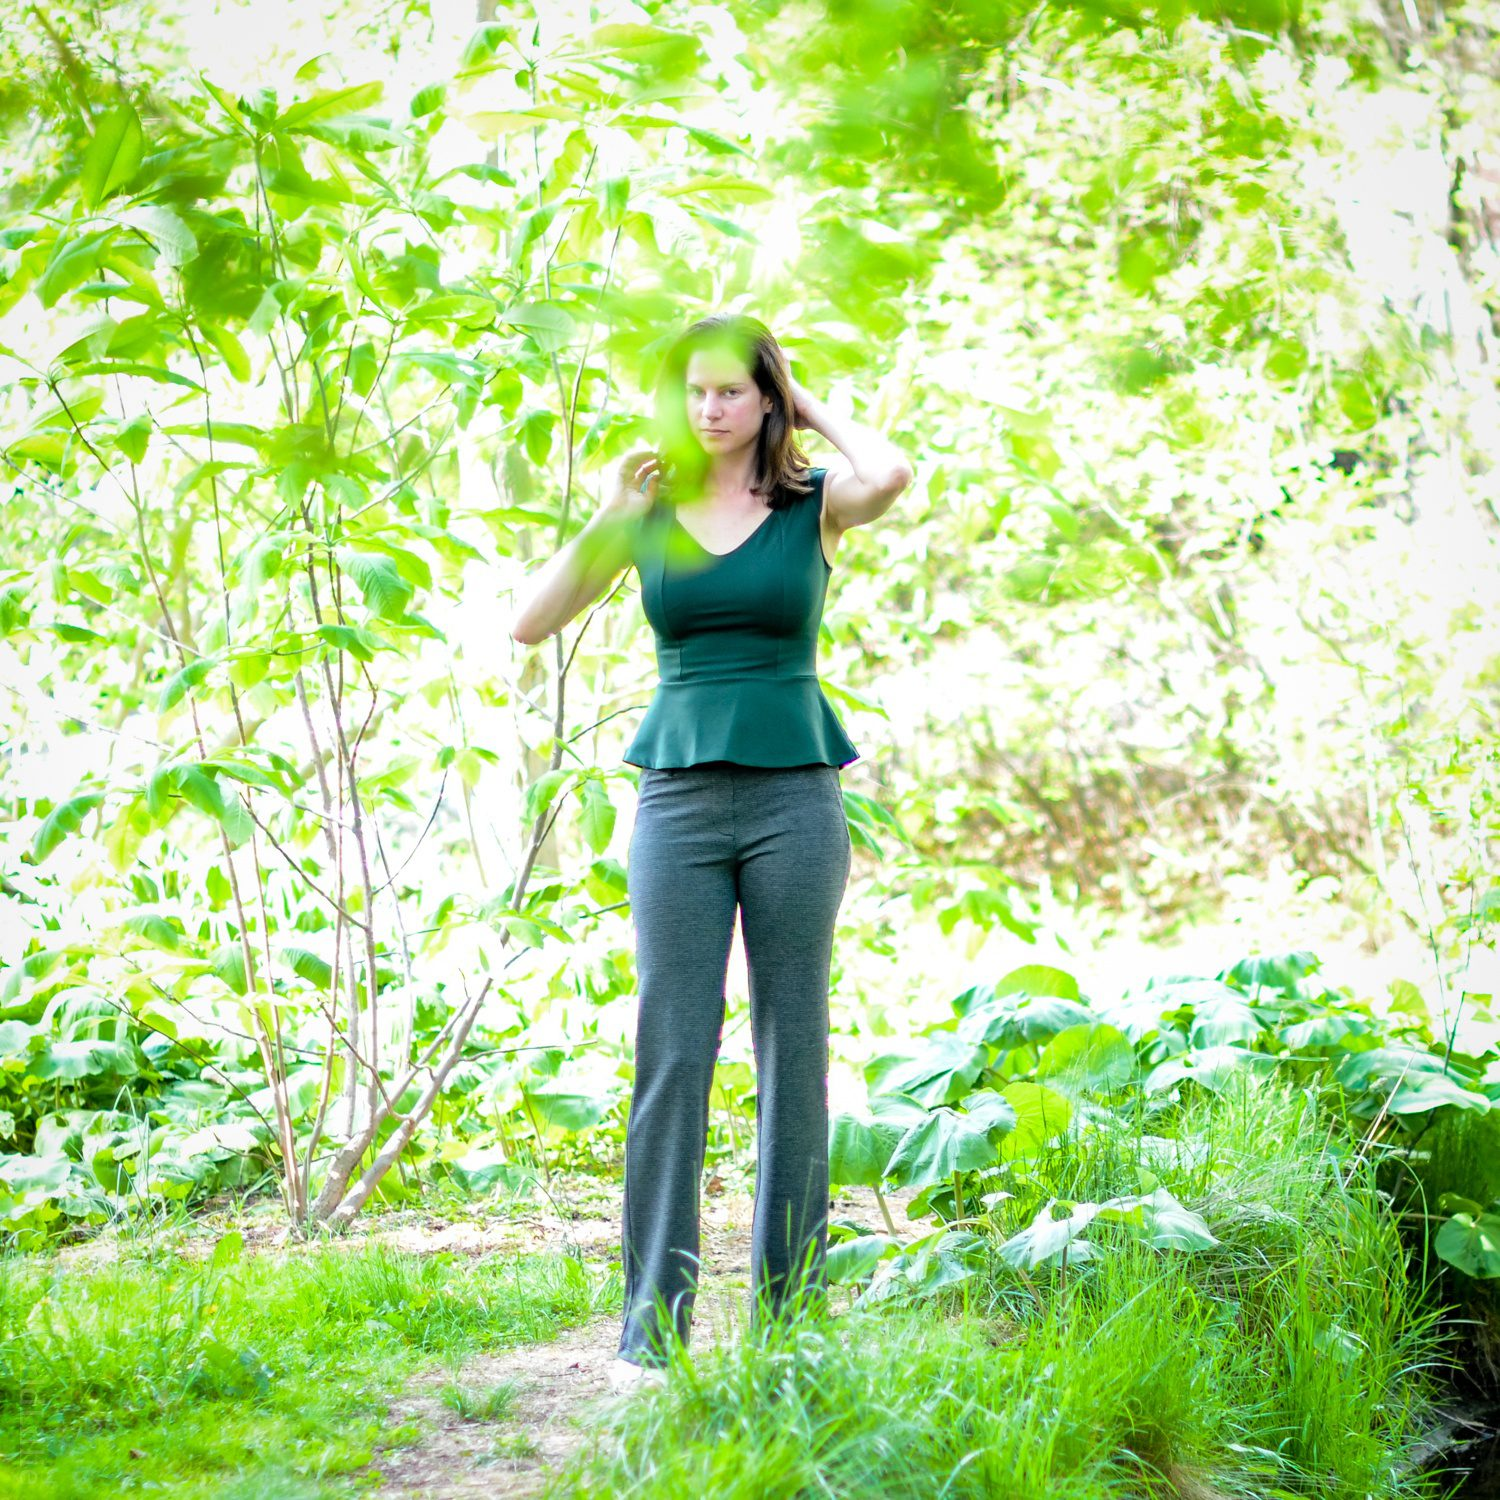 An artistic moment, walking through the Arboretum in the Dress Yoga Pants.